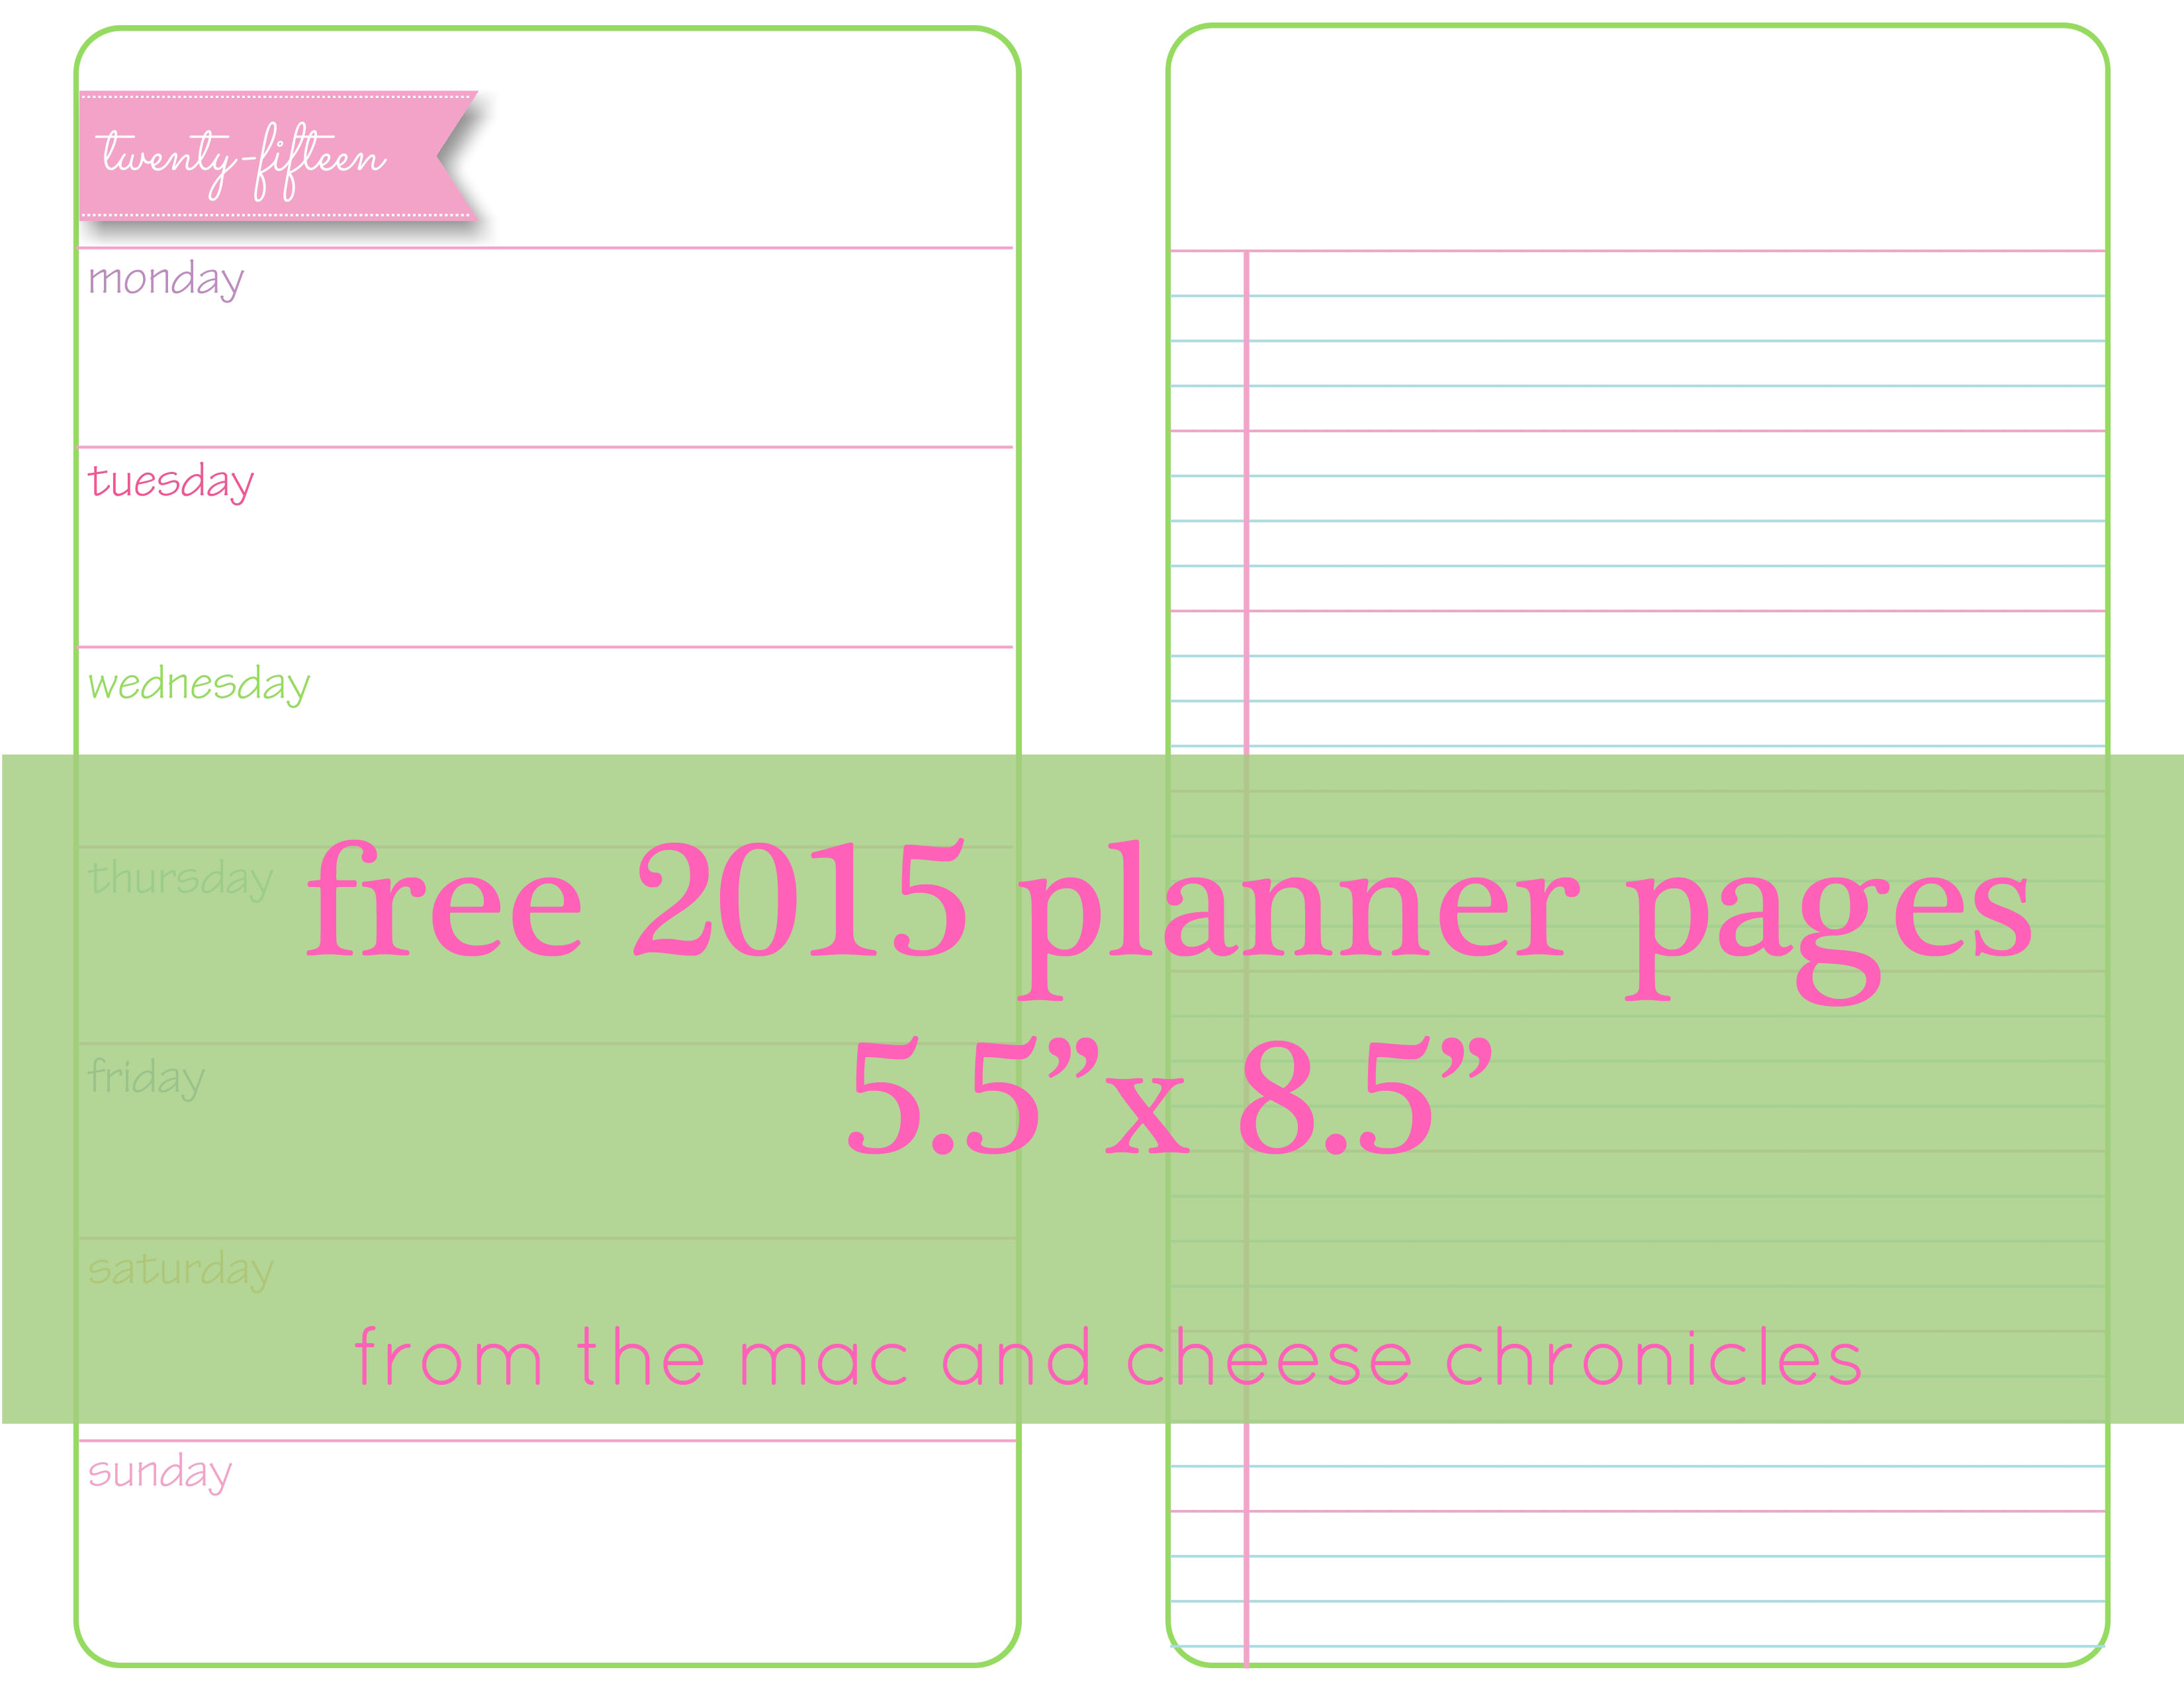 10 Images of Printable 2015 Planner Pages